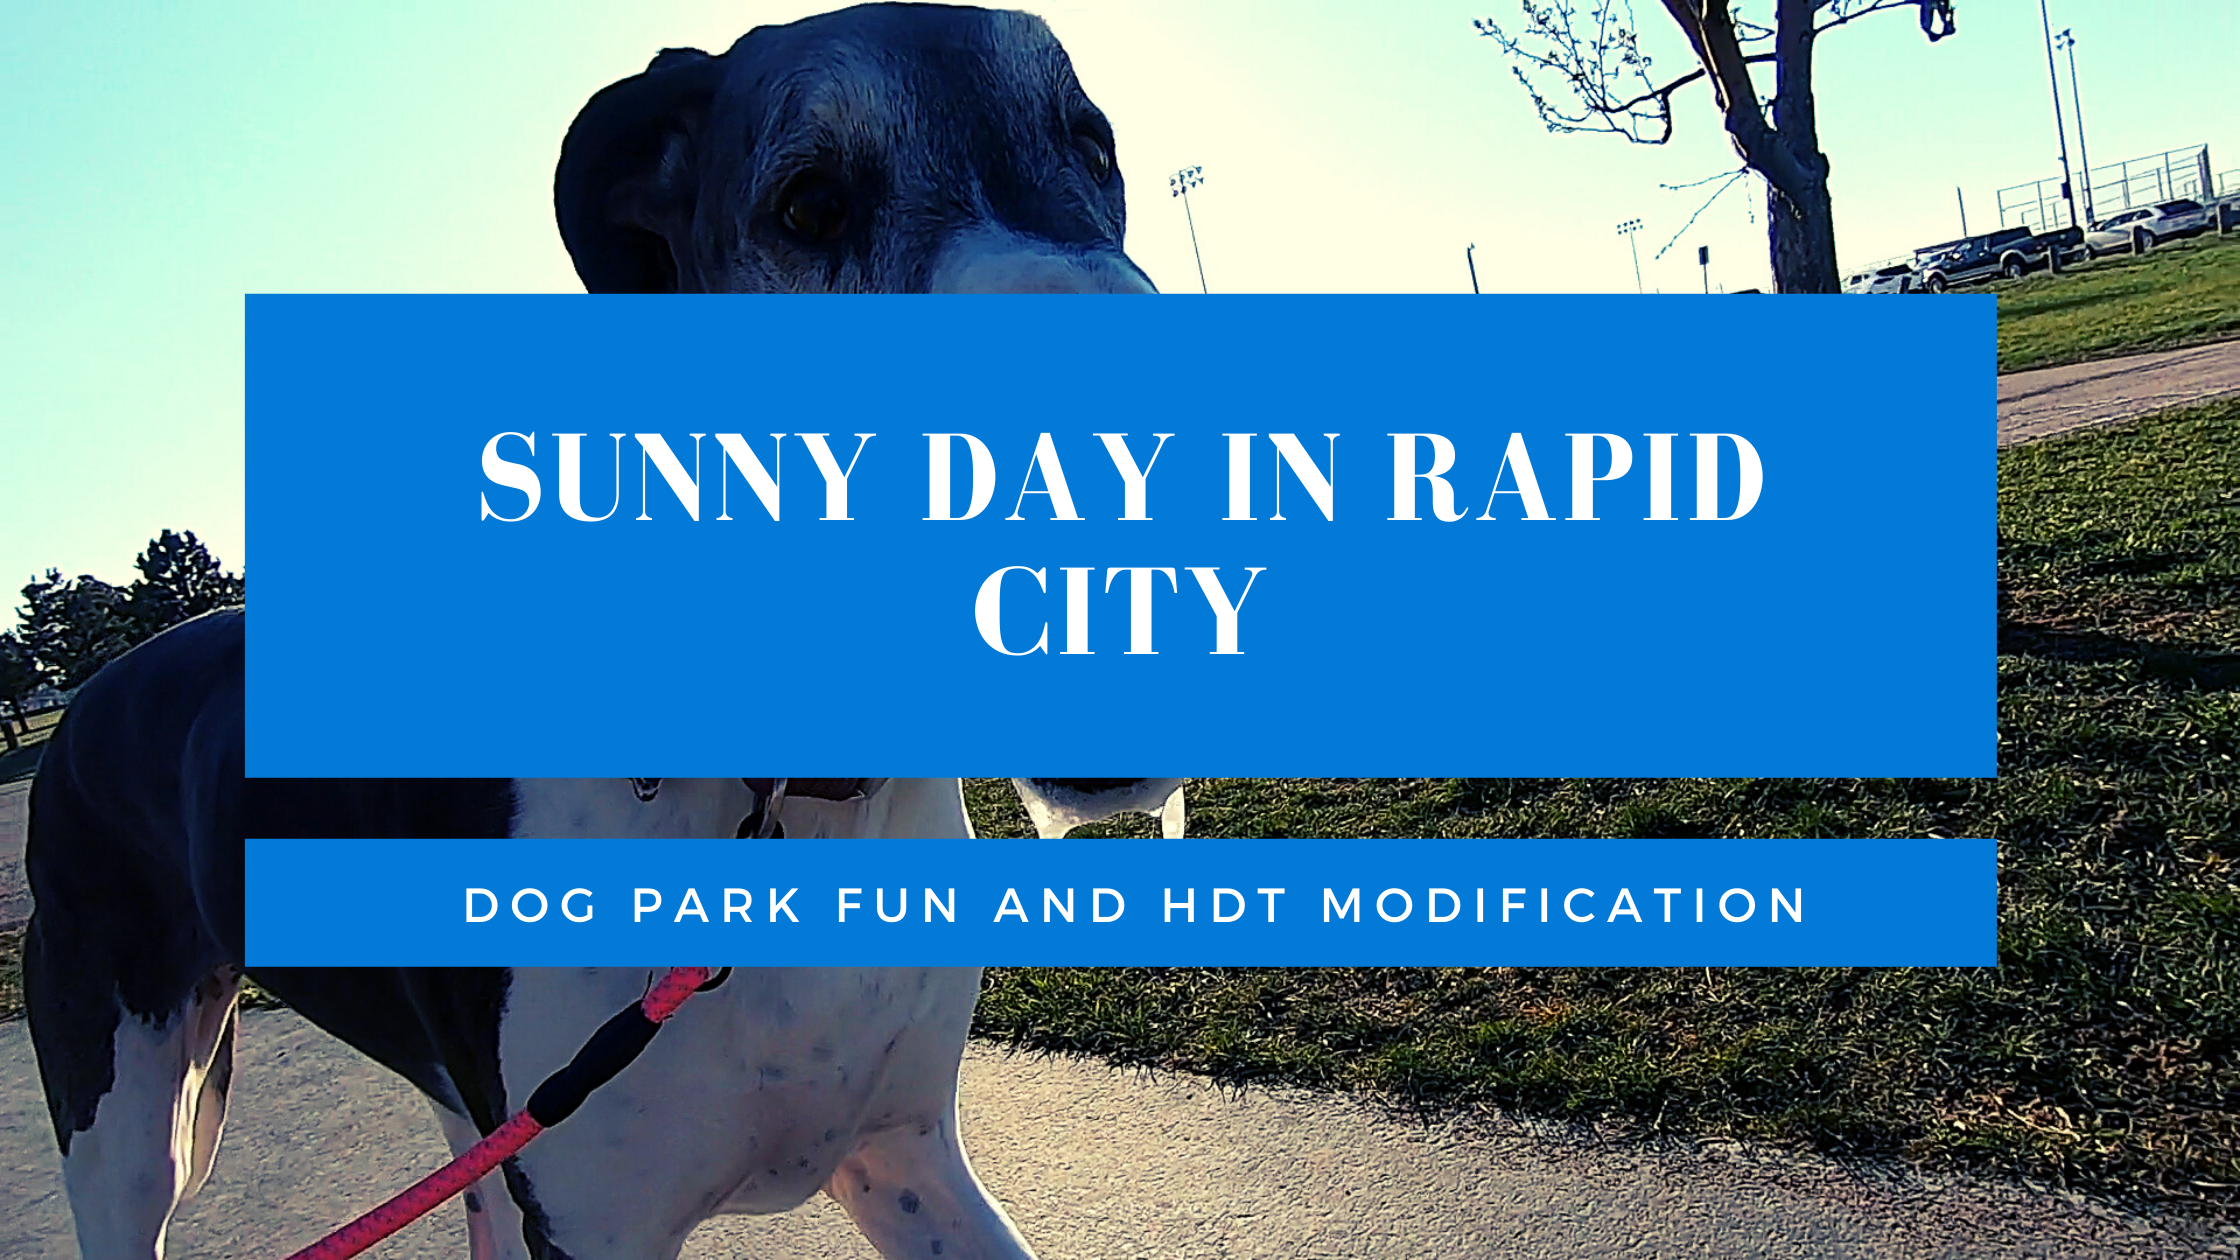 Sunny Day in Rapid City